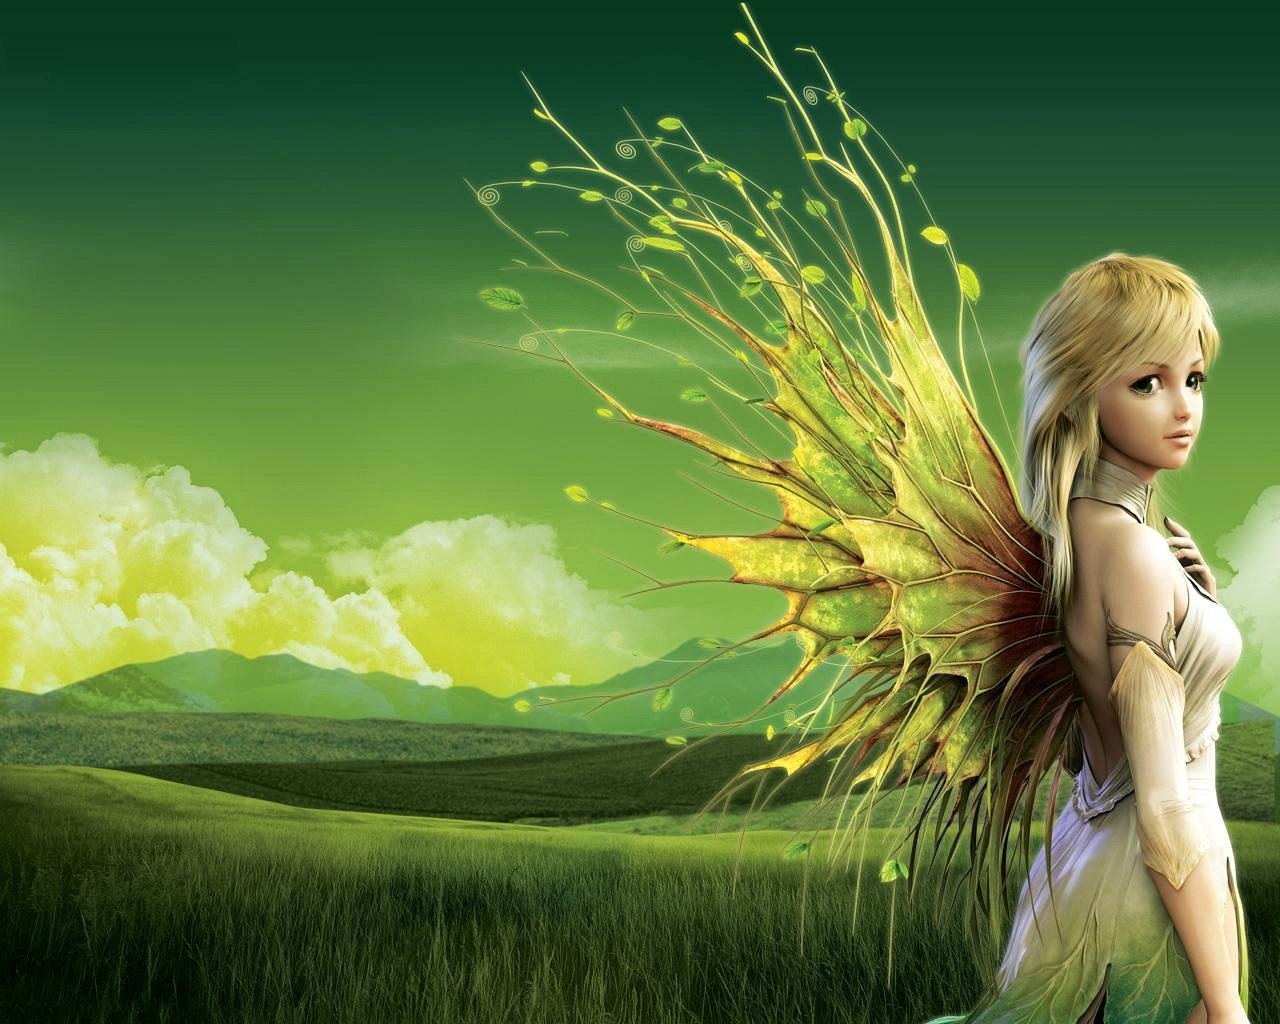 Pretty Fairy Wallpapers RAMWEB 1280x1024